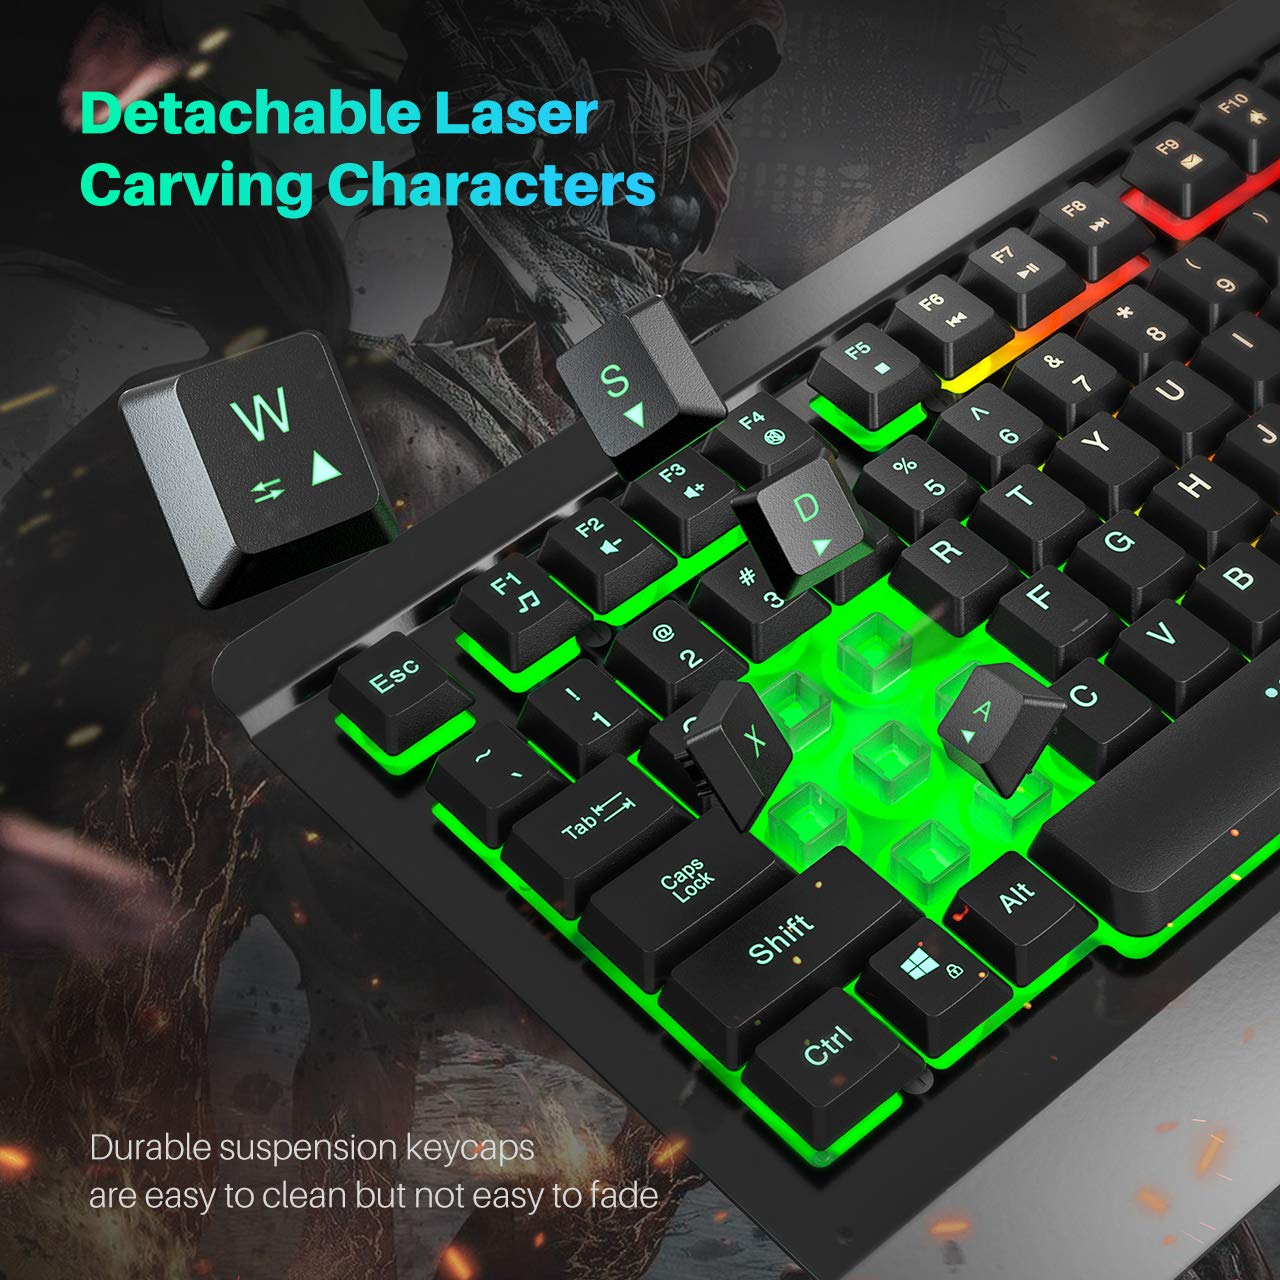 VicTsing Gaming Keyboard Mouse Combo, Ultra-Slim Rainbow LED Backlit Keyboard with Ergonomic Wrist Rest, Programmable 6 Button Mouse for Windows PC Gamer, Spill-Resistant Design - Black by VicTsing (Image #3)